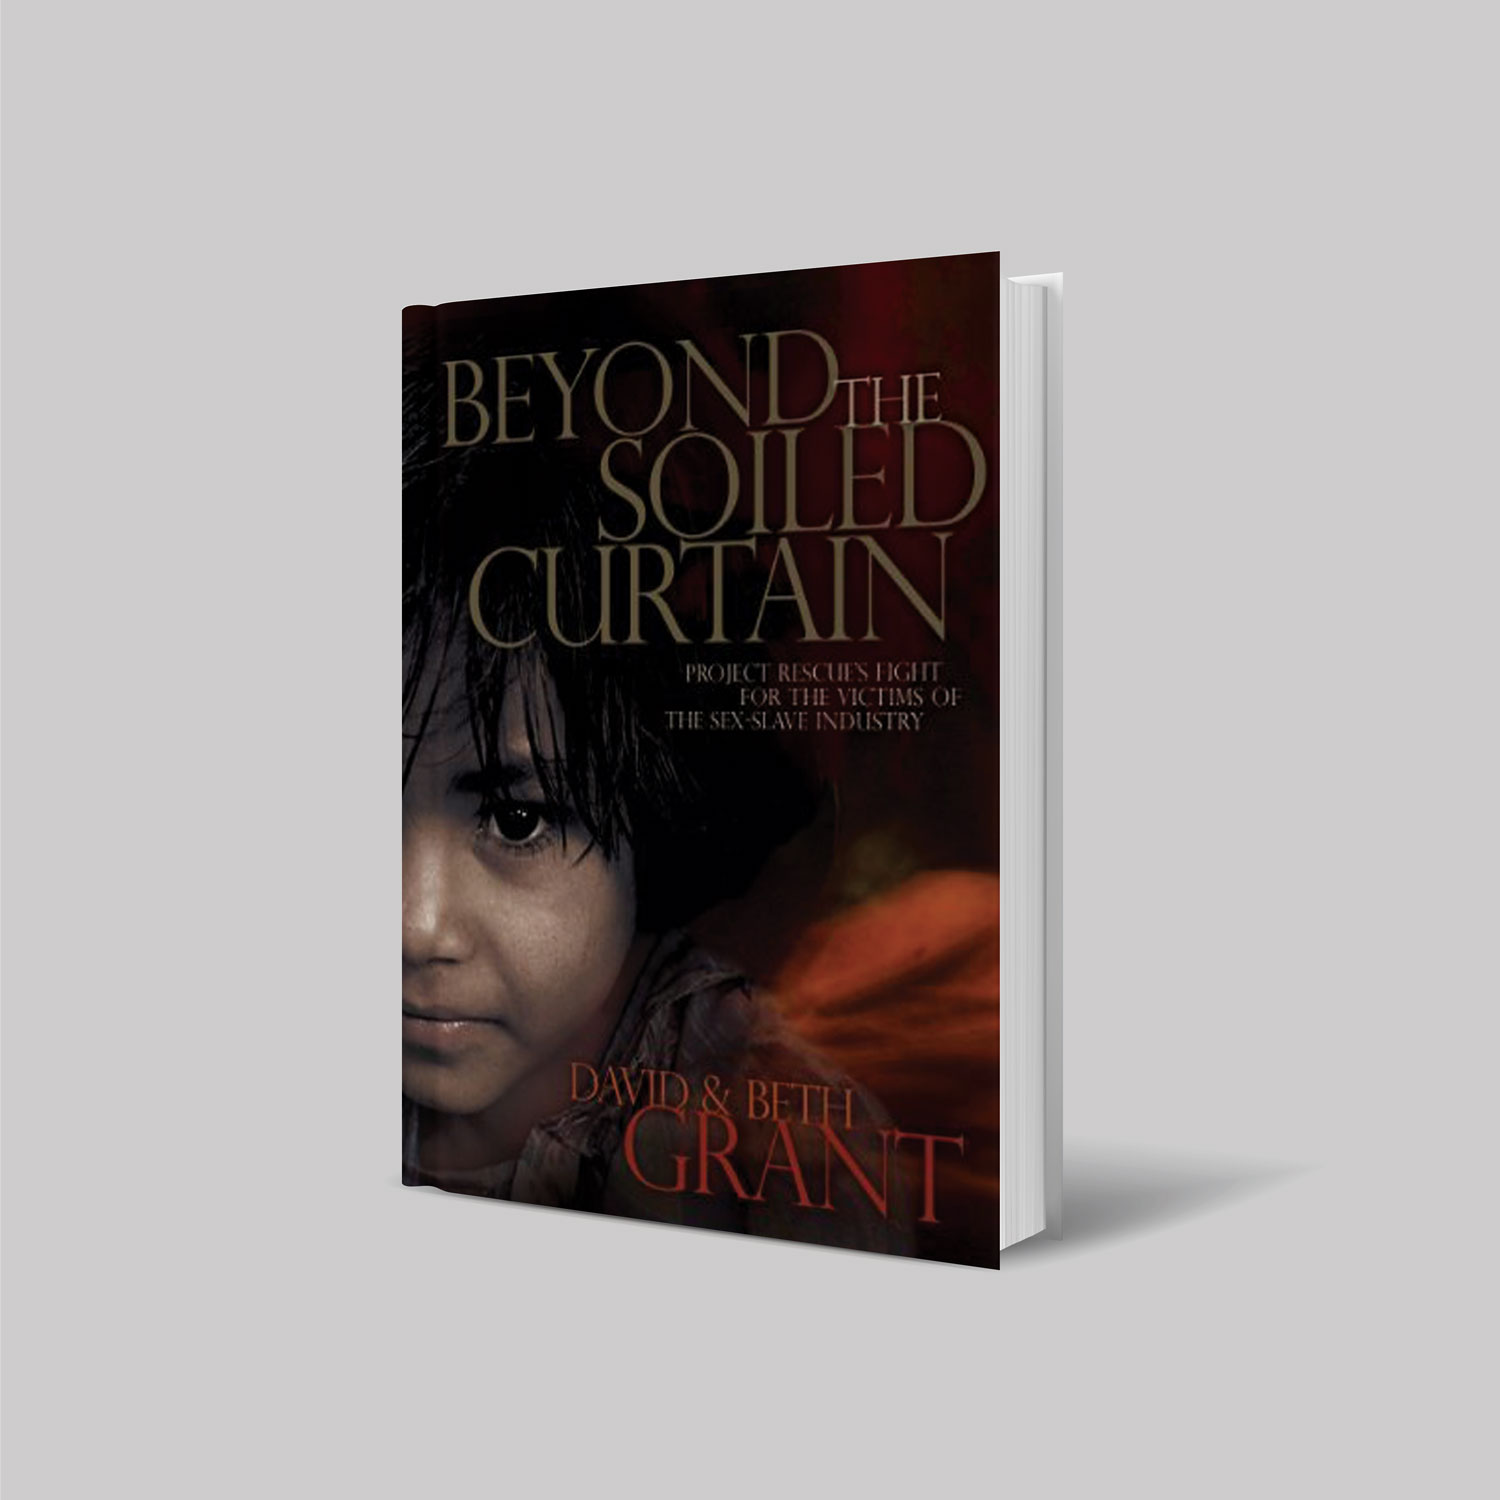 Beyond the Soiled Curtain : Project Rescues Fight for the Victims of the Sex Slave Industry